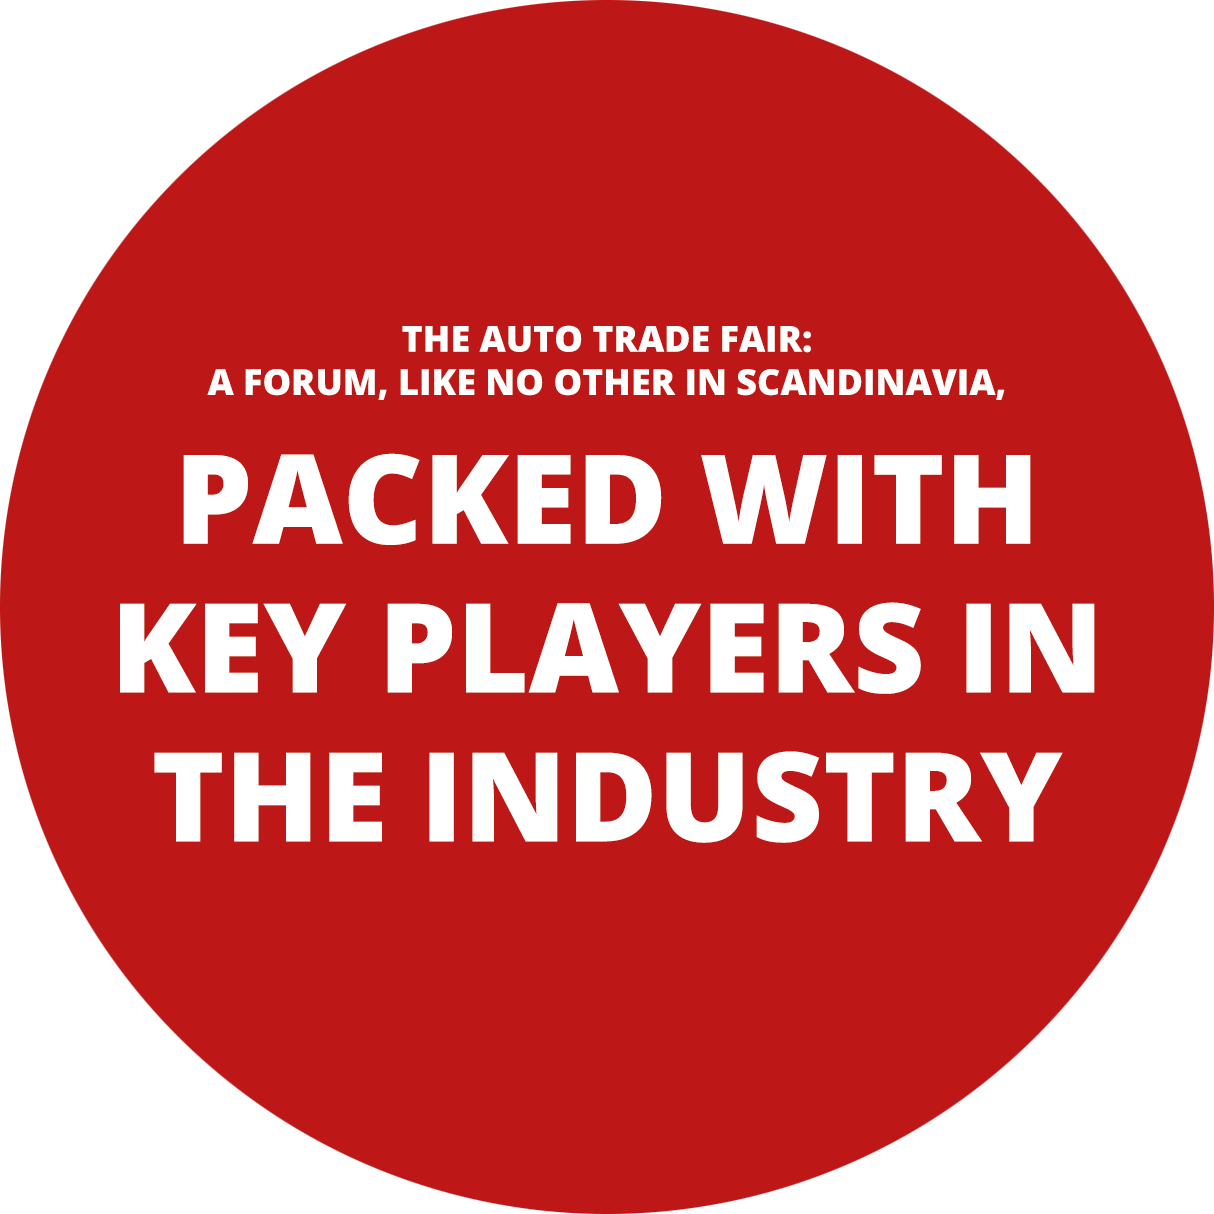 The Auto Trade Fair: A forum, like No other in Scandinavia, packed with key players in the industry